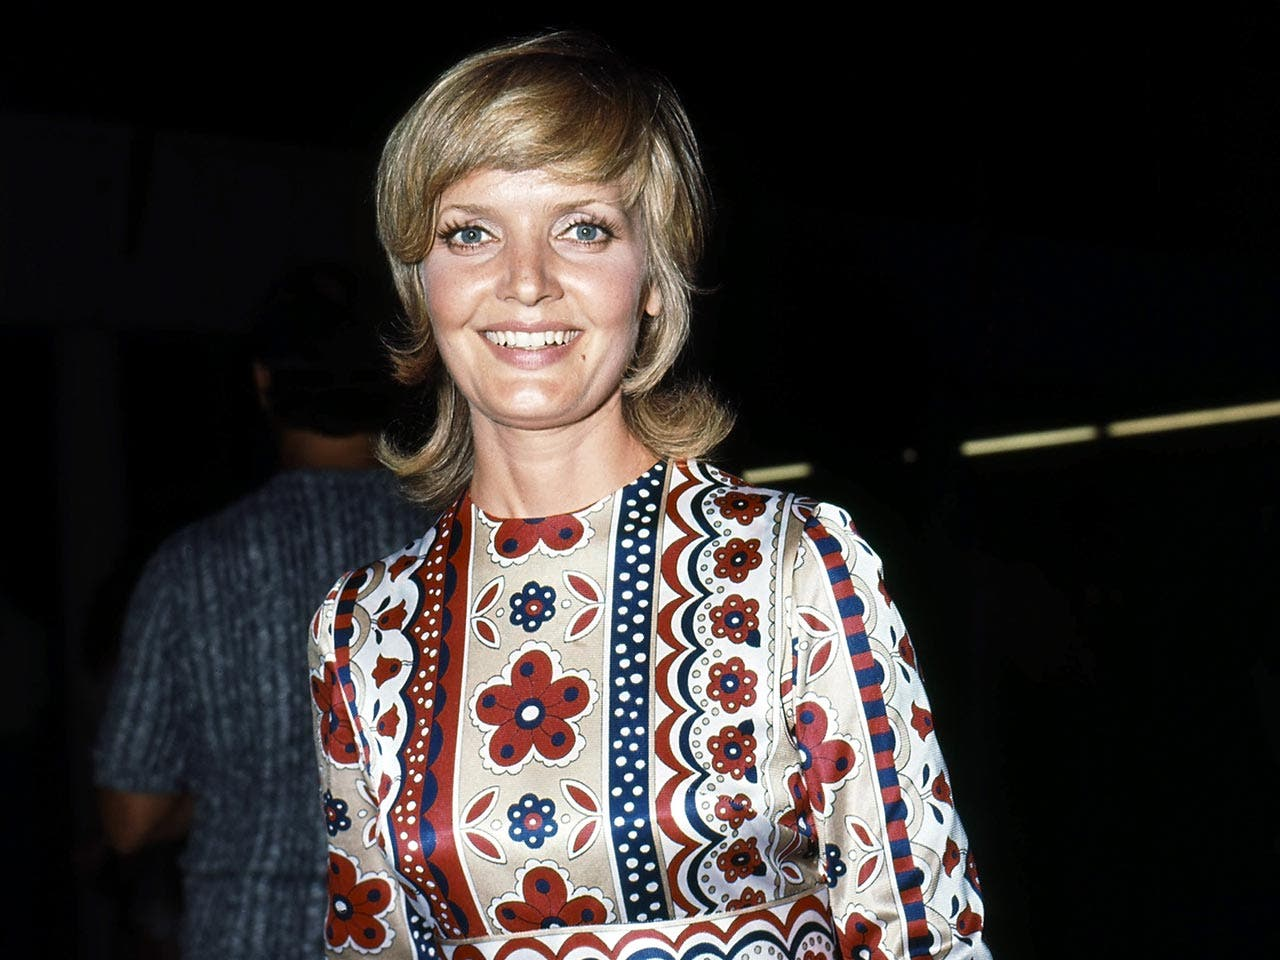 Florence Henderson | Michael Ochs Archives/Getty Images